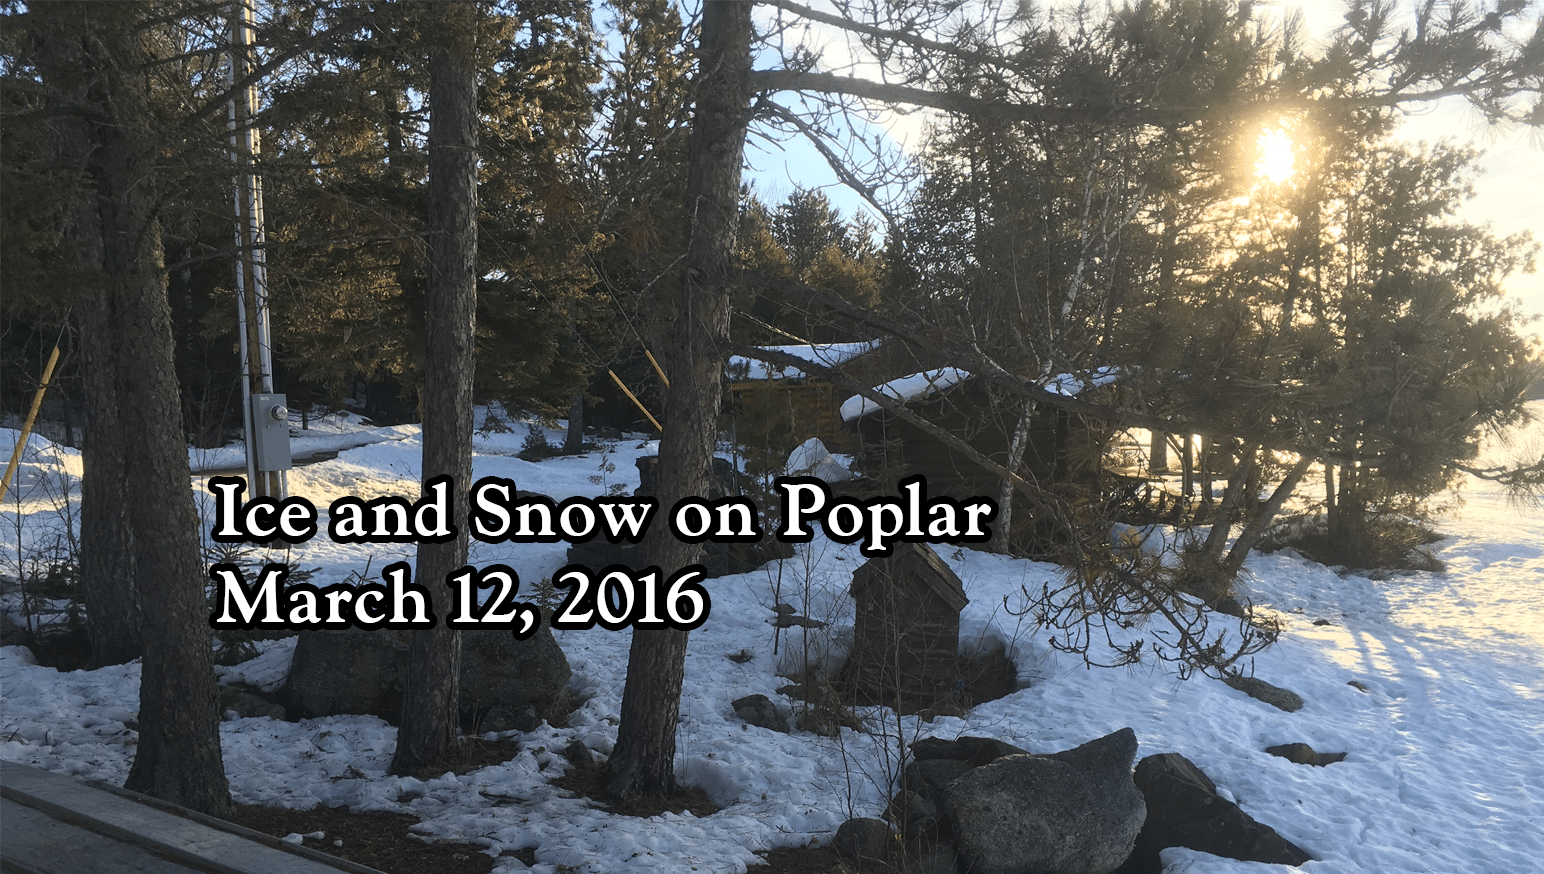 Ice and Snow on March 12, 2016